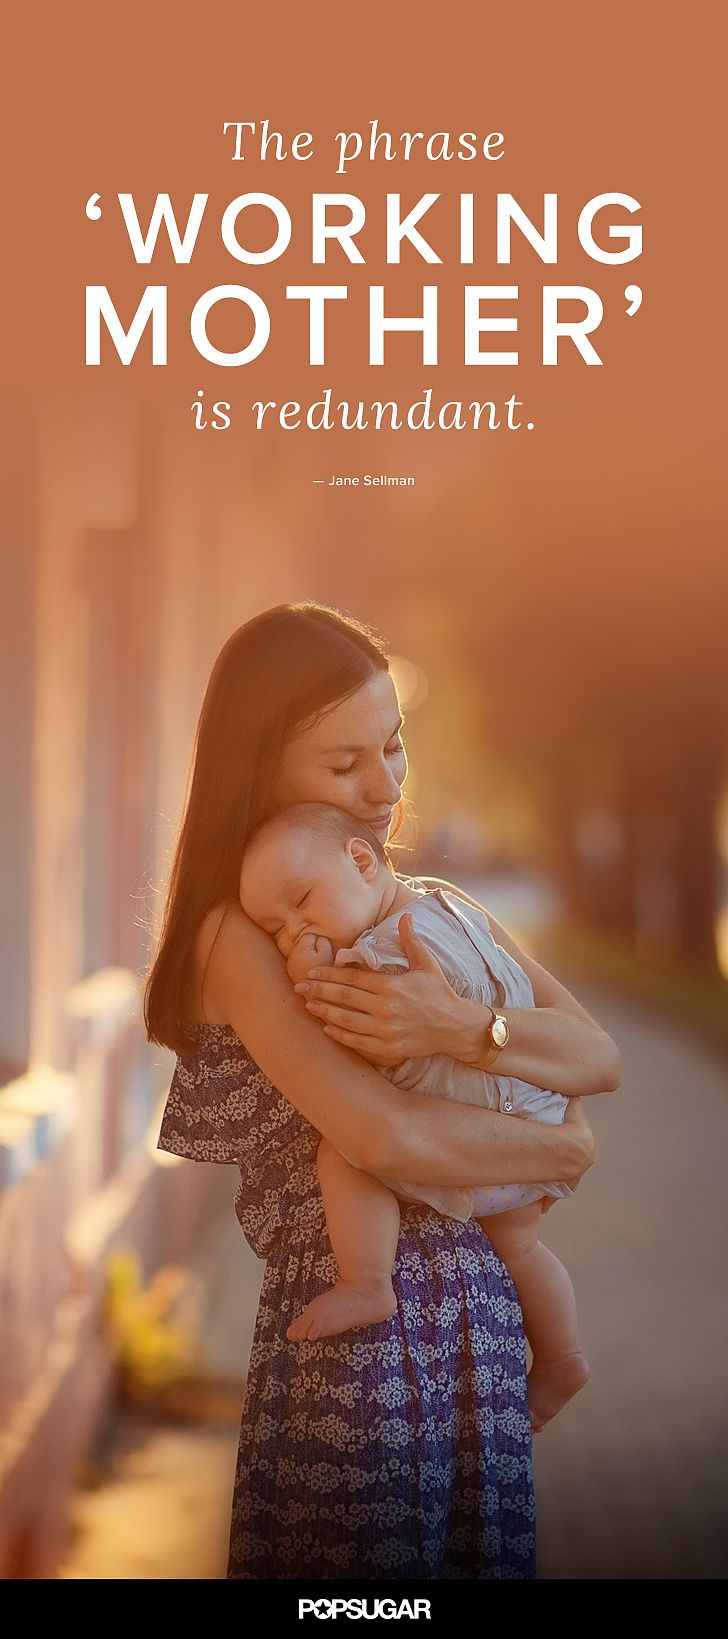 62 best images about Motherhood on Pinterest | Mothers day ...